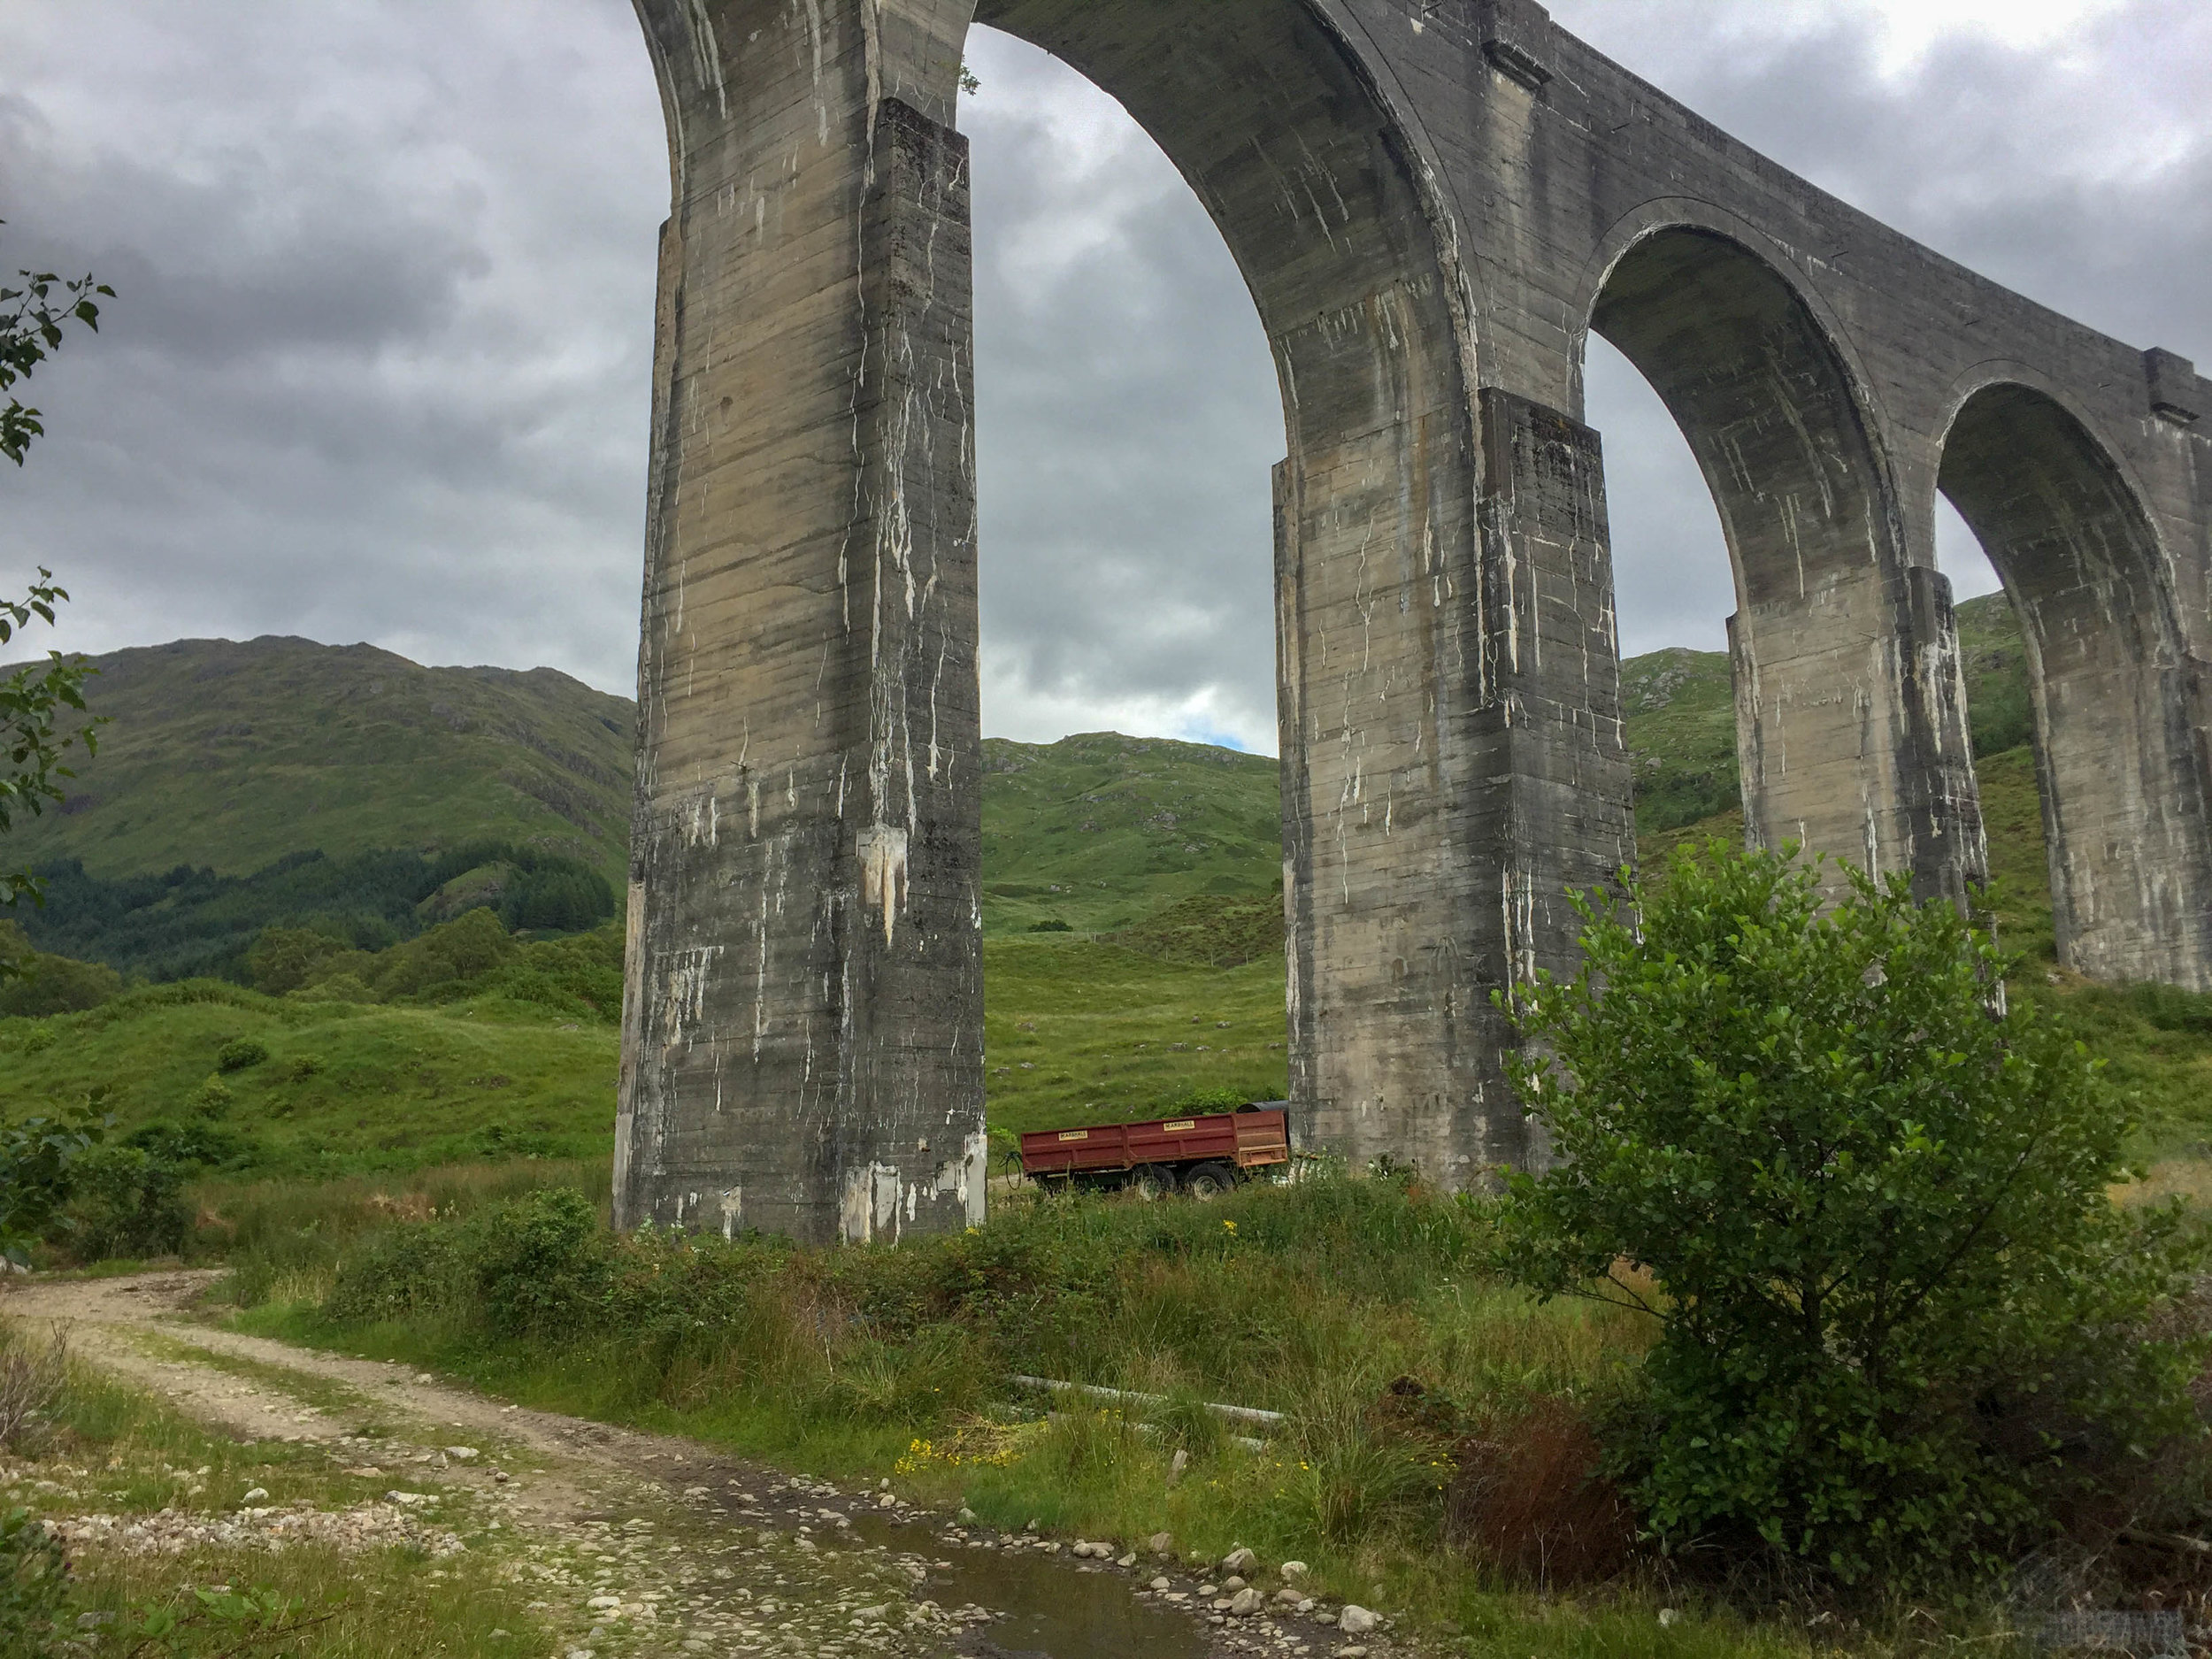 3. Pass through the viaduct arch and head up the path to your right